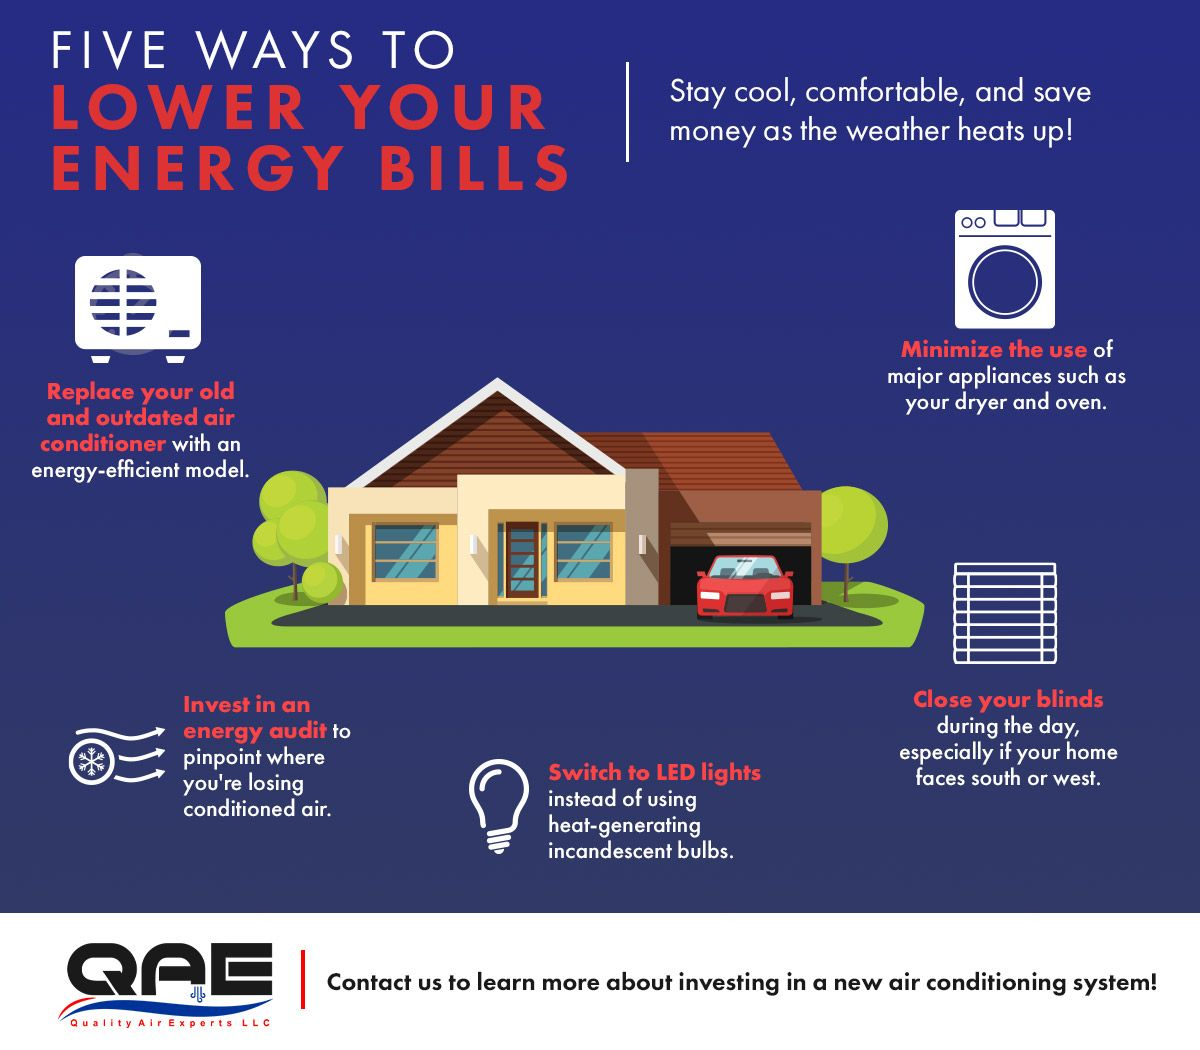 5 Ways To Lower Your Energy Bill.jpg